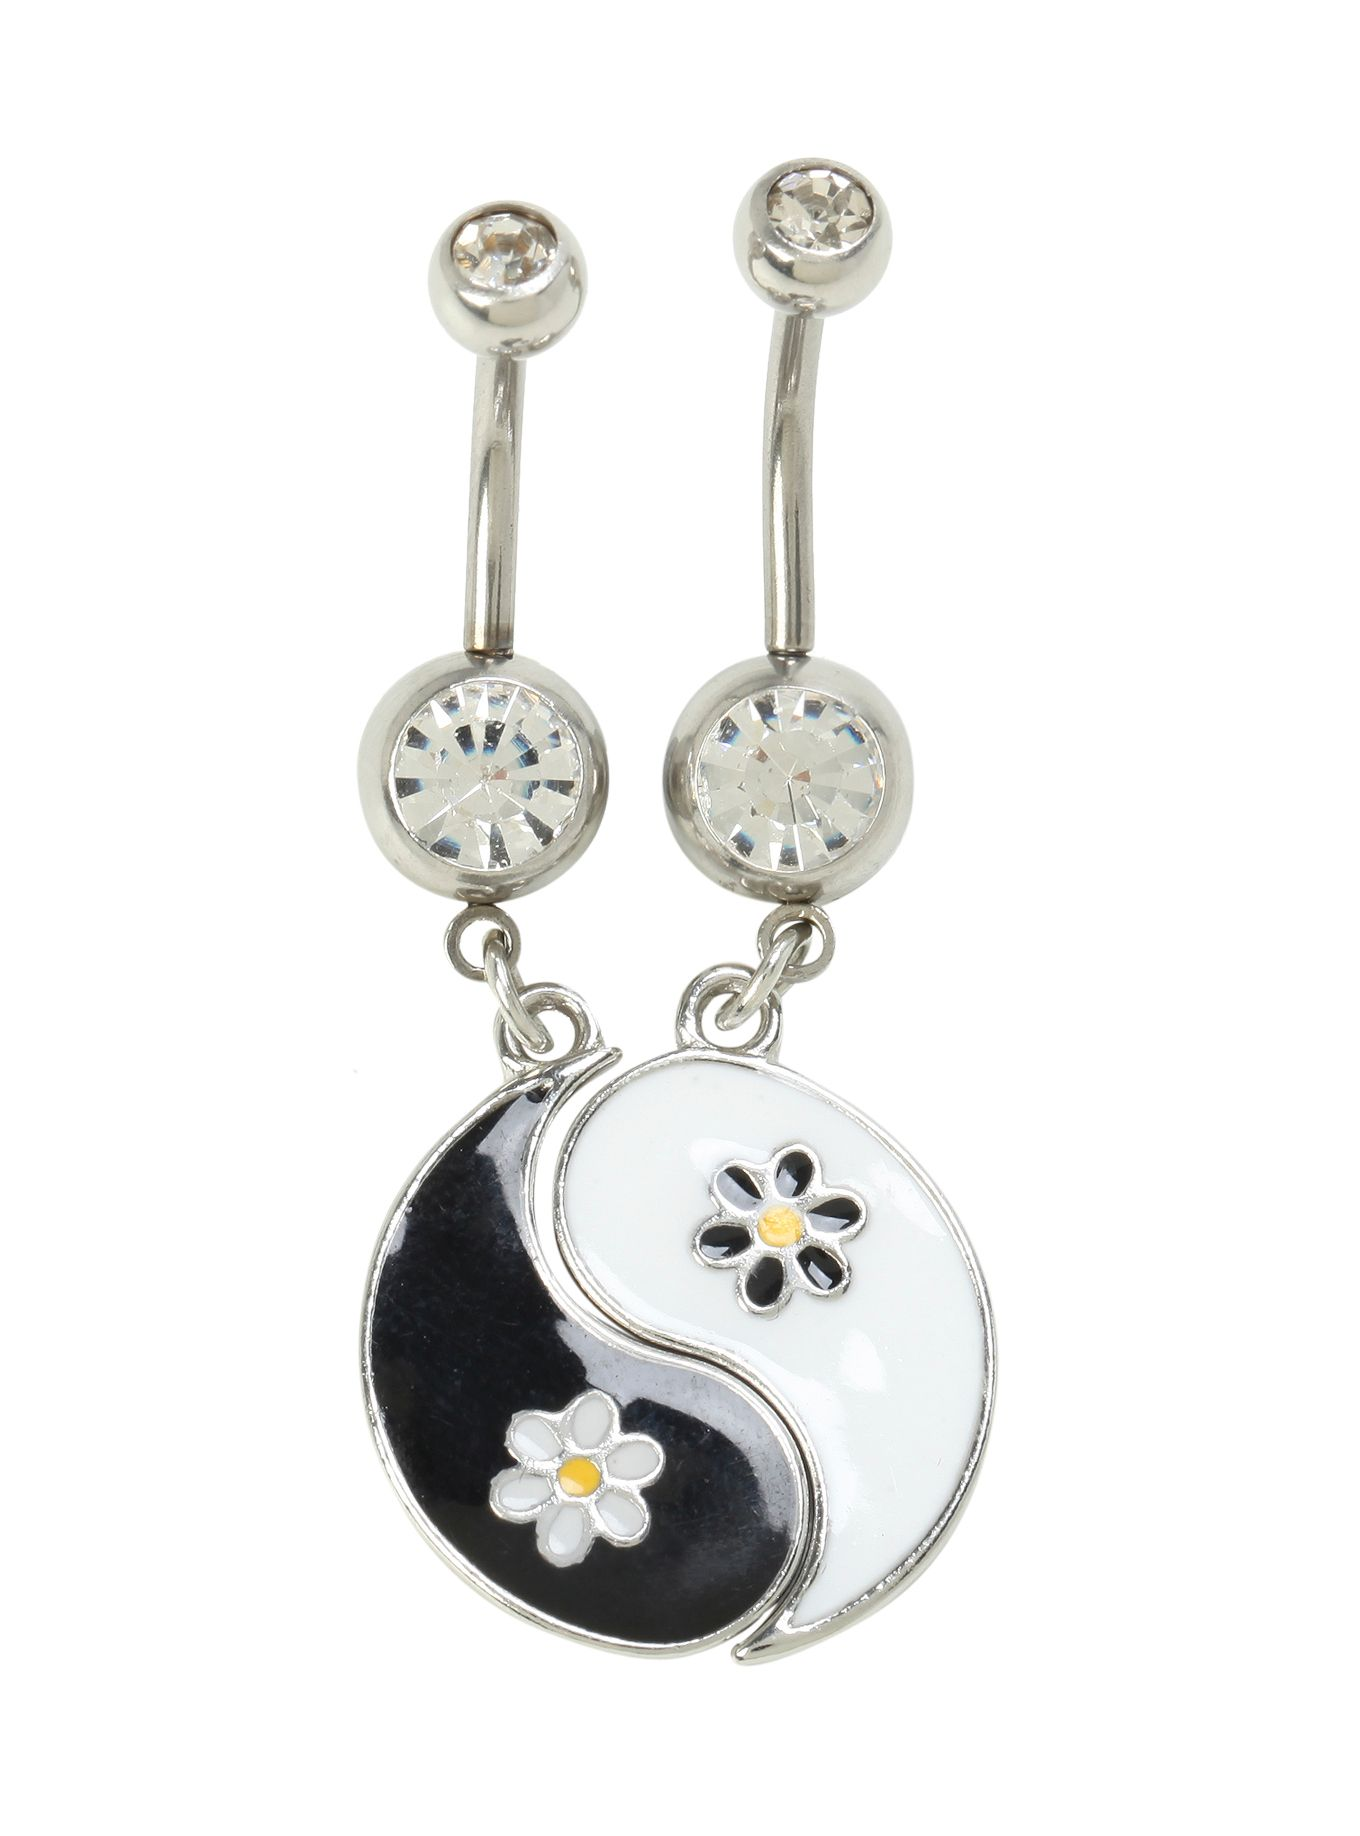 14g Steel Yin Yang Daisy Navel Barbell 2 Pack Hot Topic Navel Jewelry Navel Piercing Jewelry Belly Button Rings